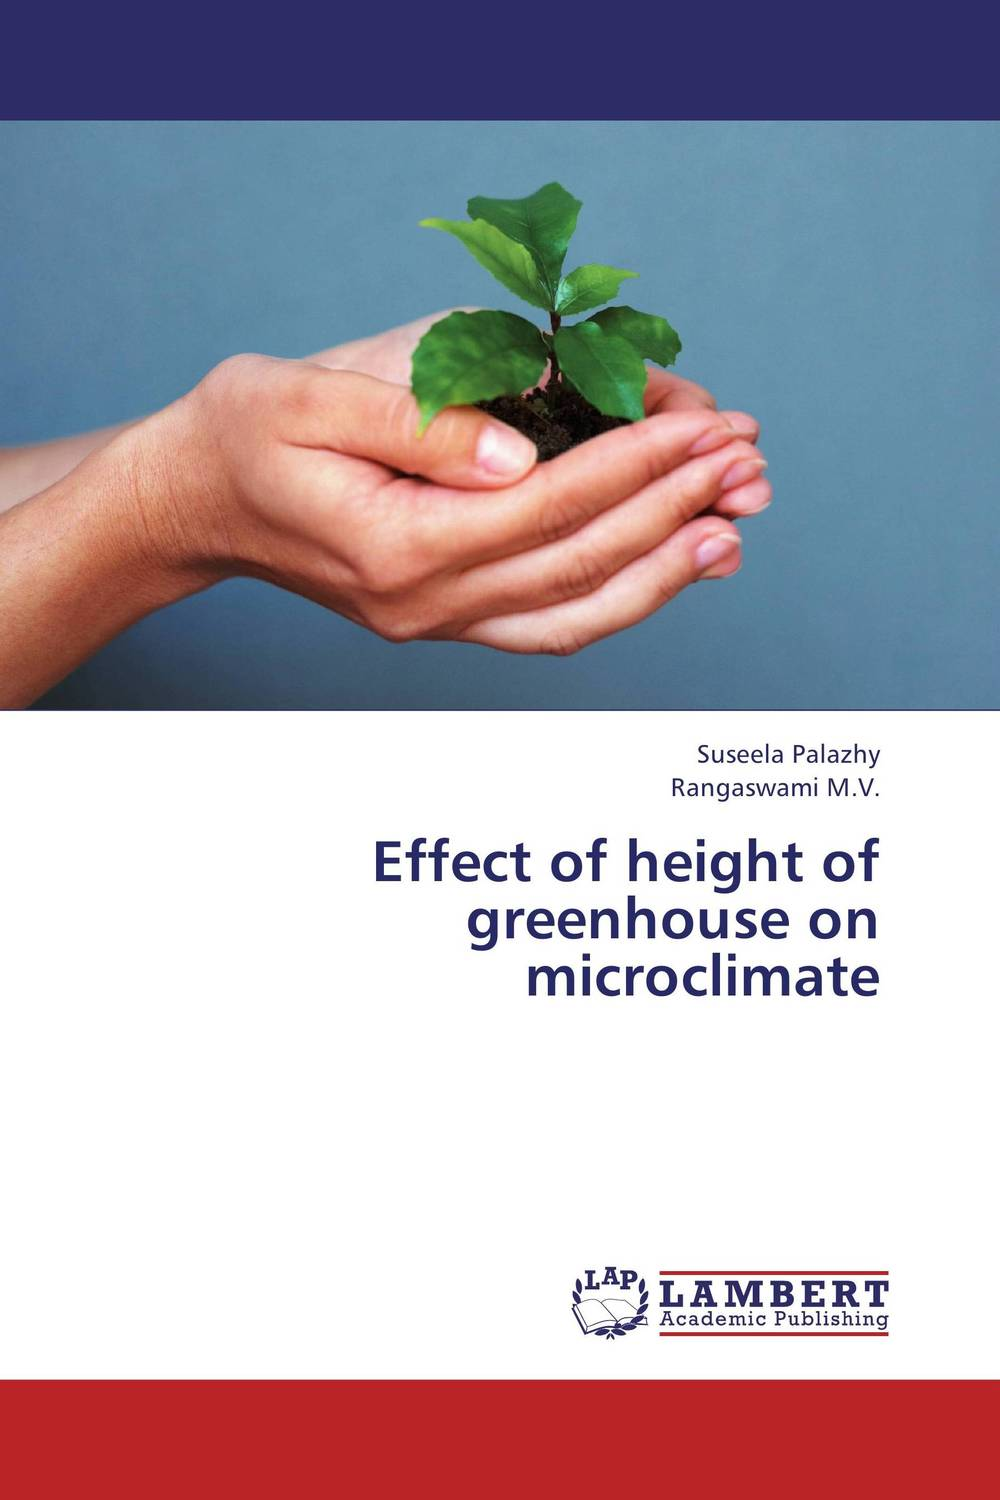 Effect of height of greenhouse on microclimate